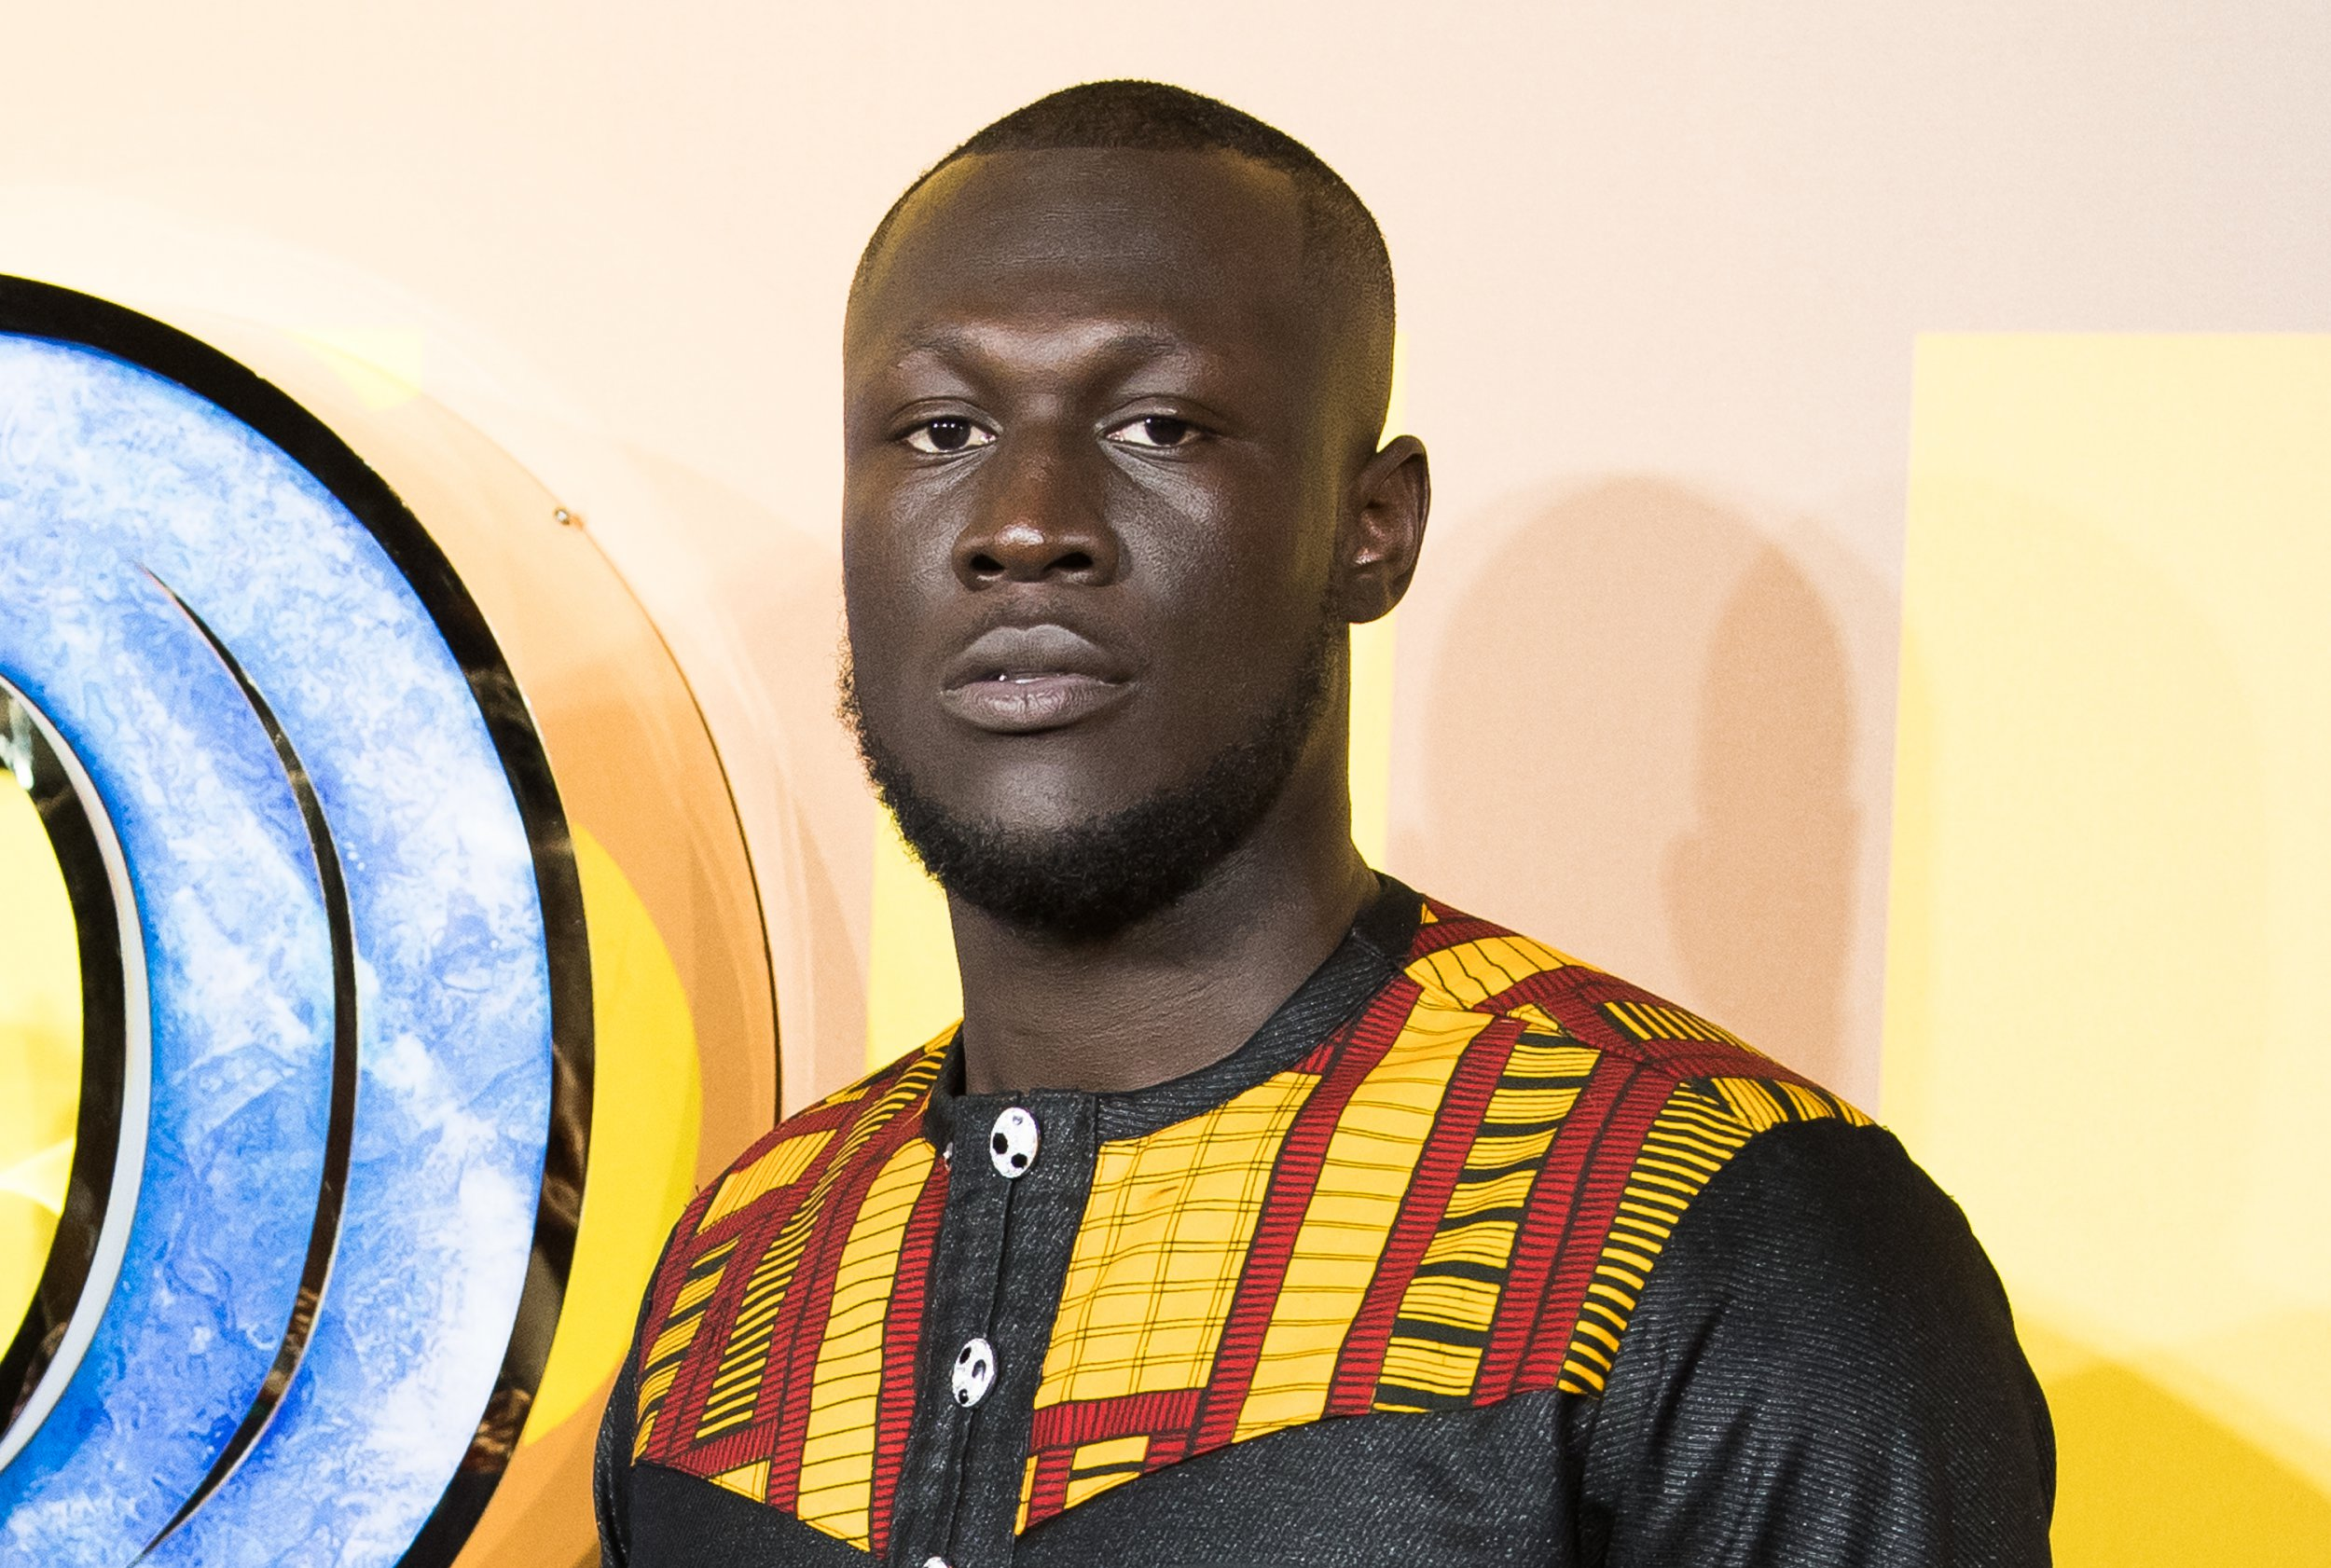 LONDON, ENGLAND - FEBRUARY 08: Stormzy attends the European Premiere of 'Black Panther' at Eventim Apollo on February 8, 2018 in London, England. (Photo by Samir Hussein/Samir Hussein/WireImage)